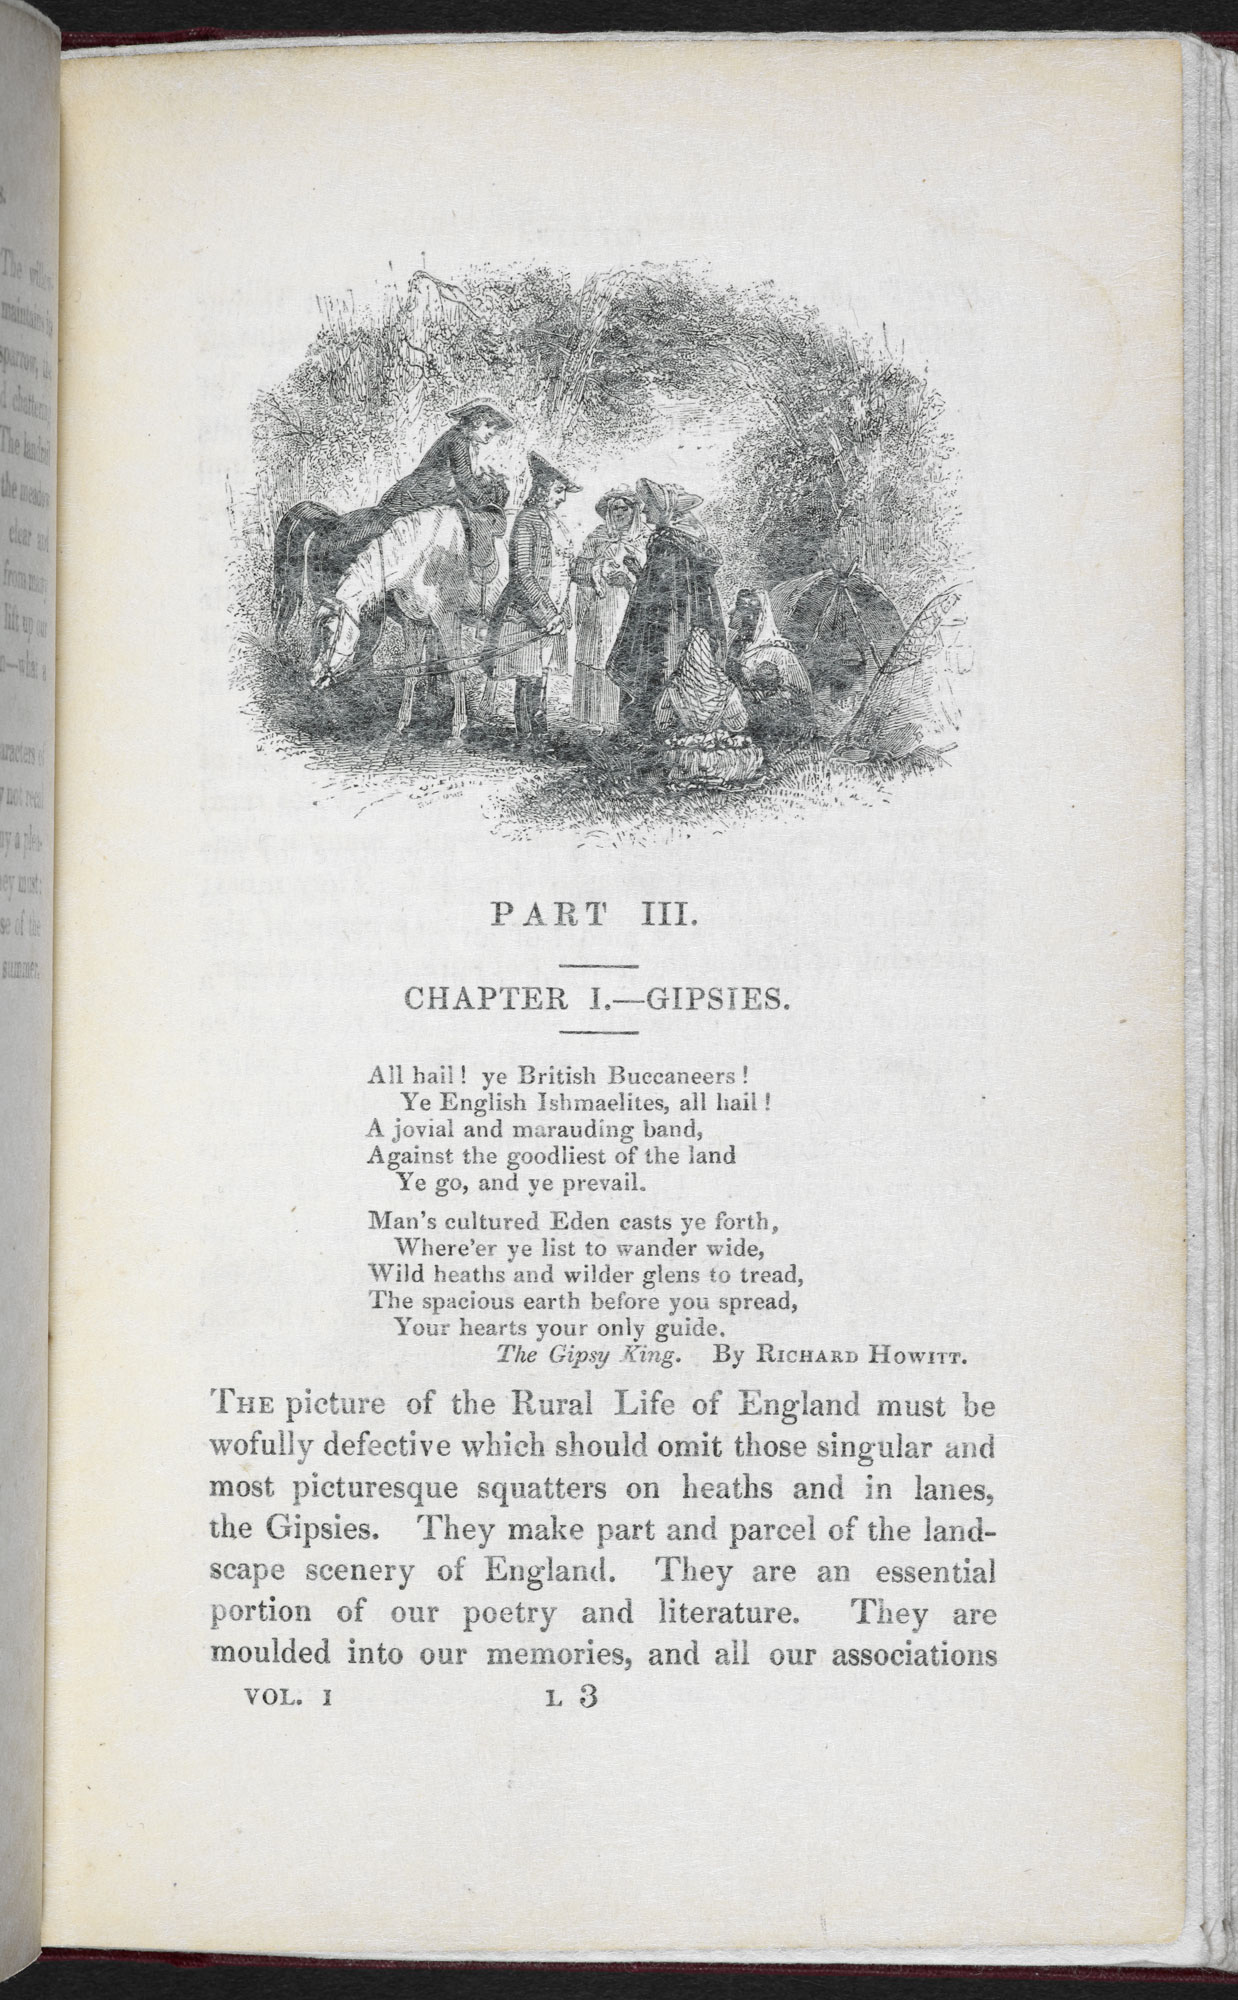 The Rural Life of England by William Howitt [page: 219]